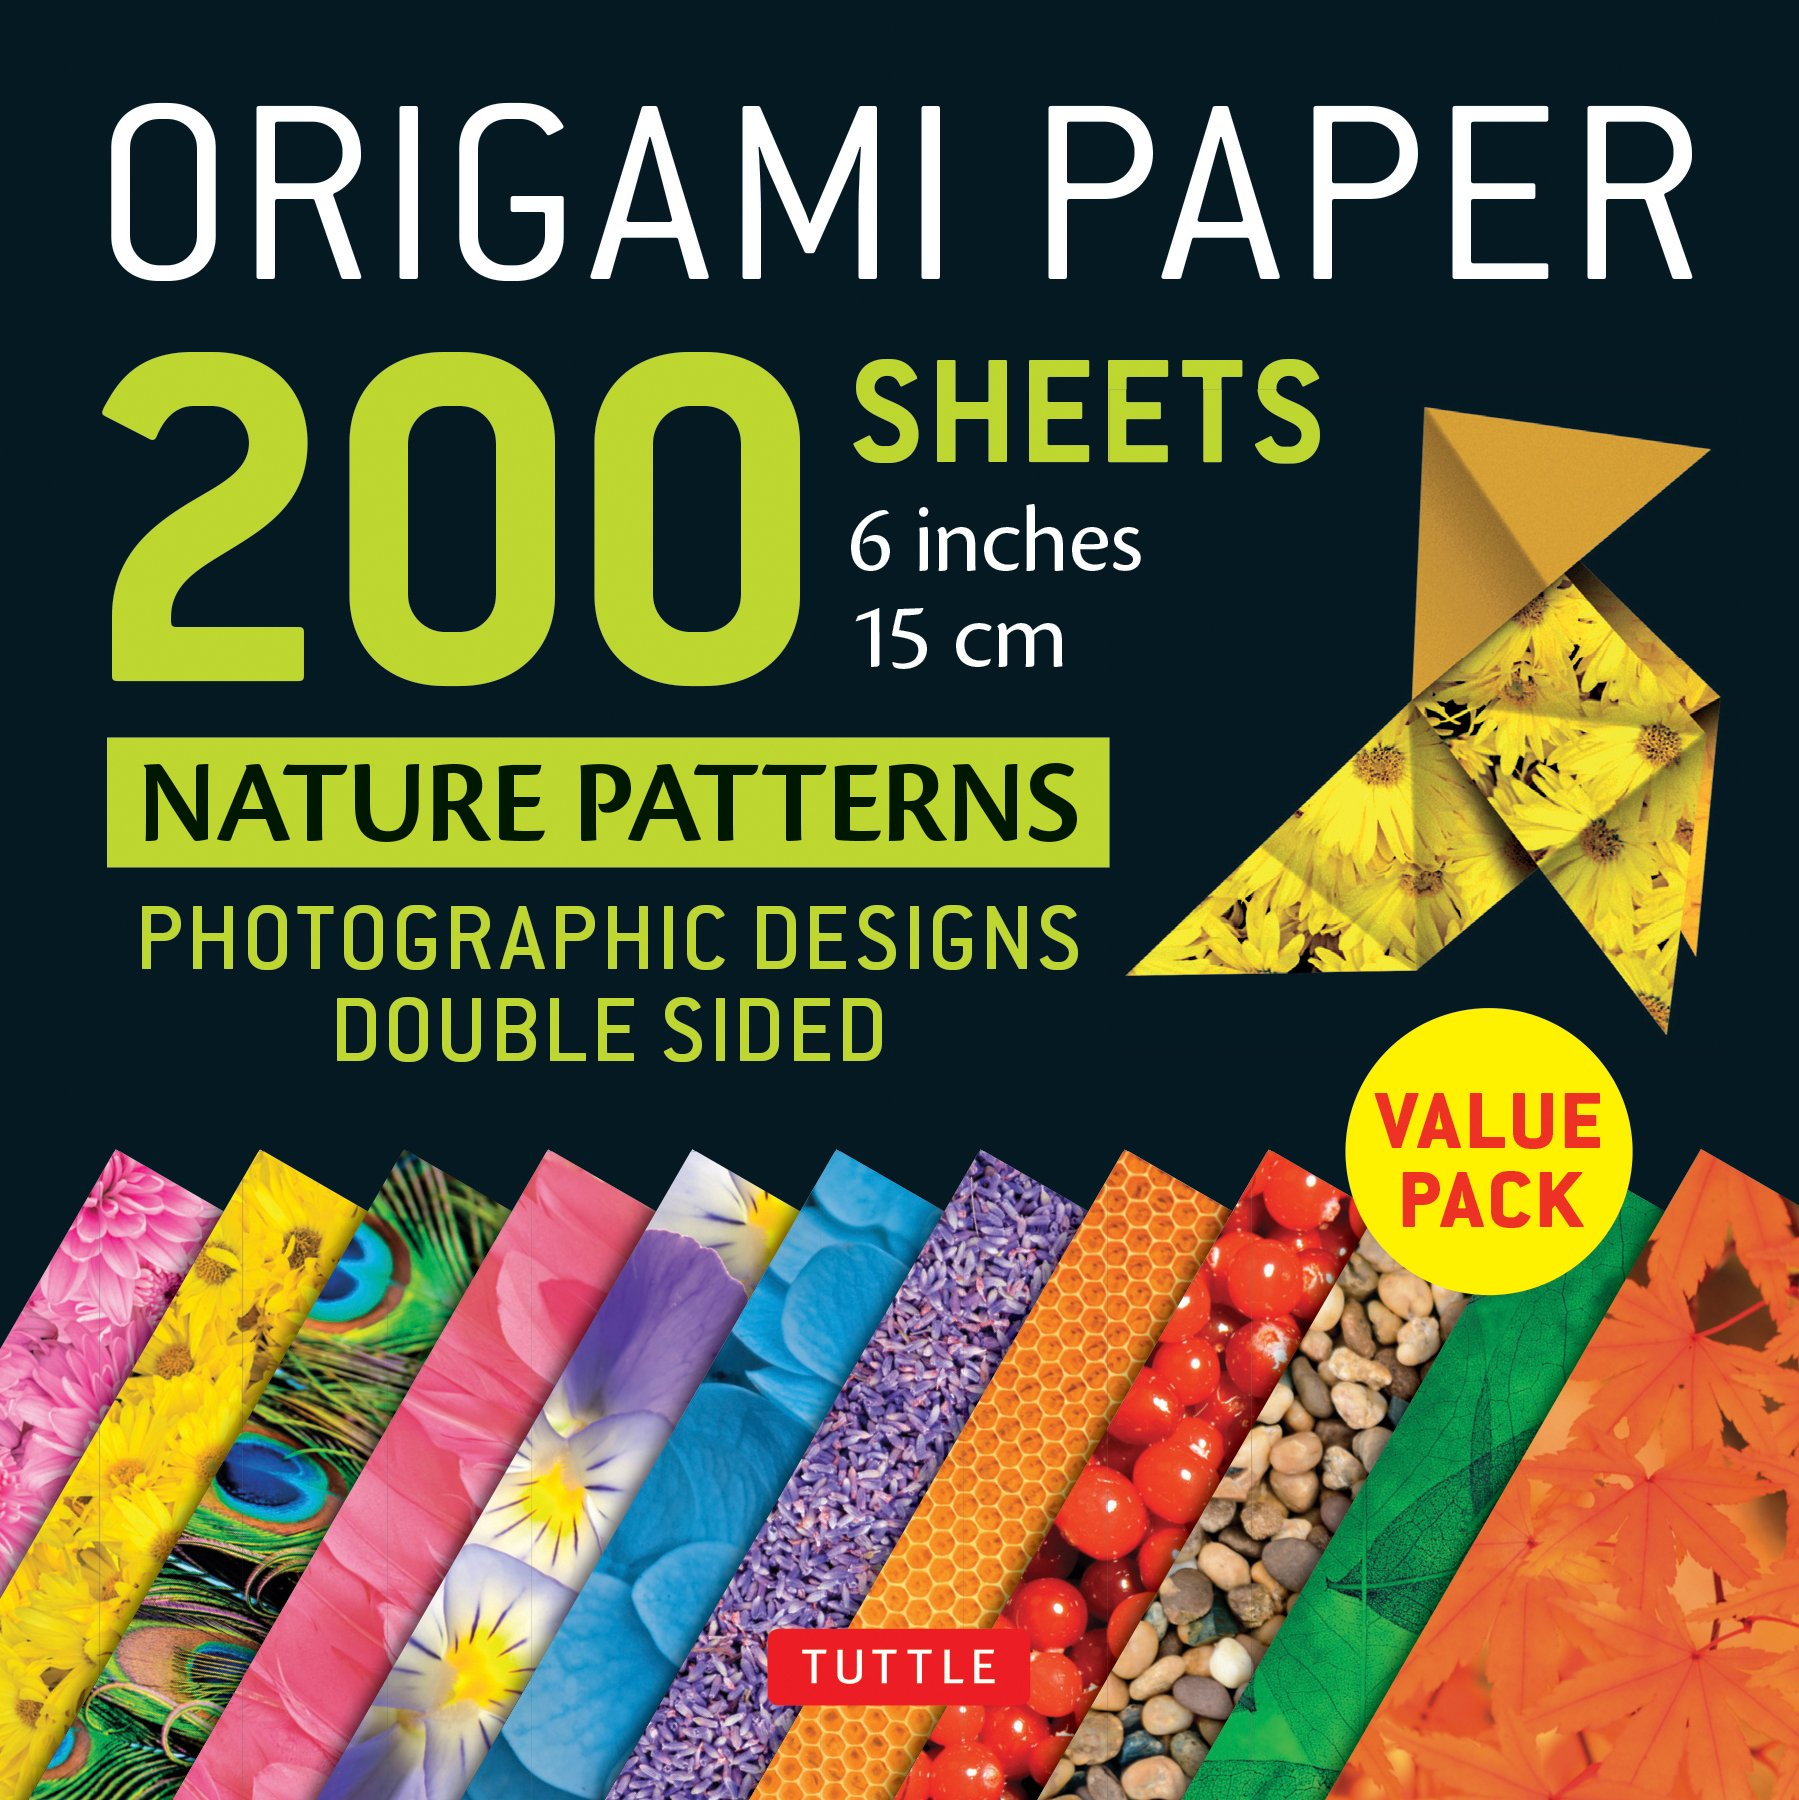 Origami Paper 200 Sheets Nature Patterns 6 (15 CM) (Stationery)